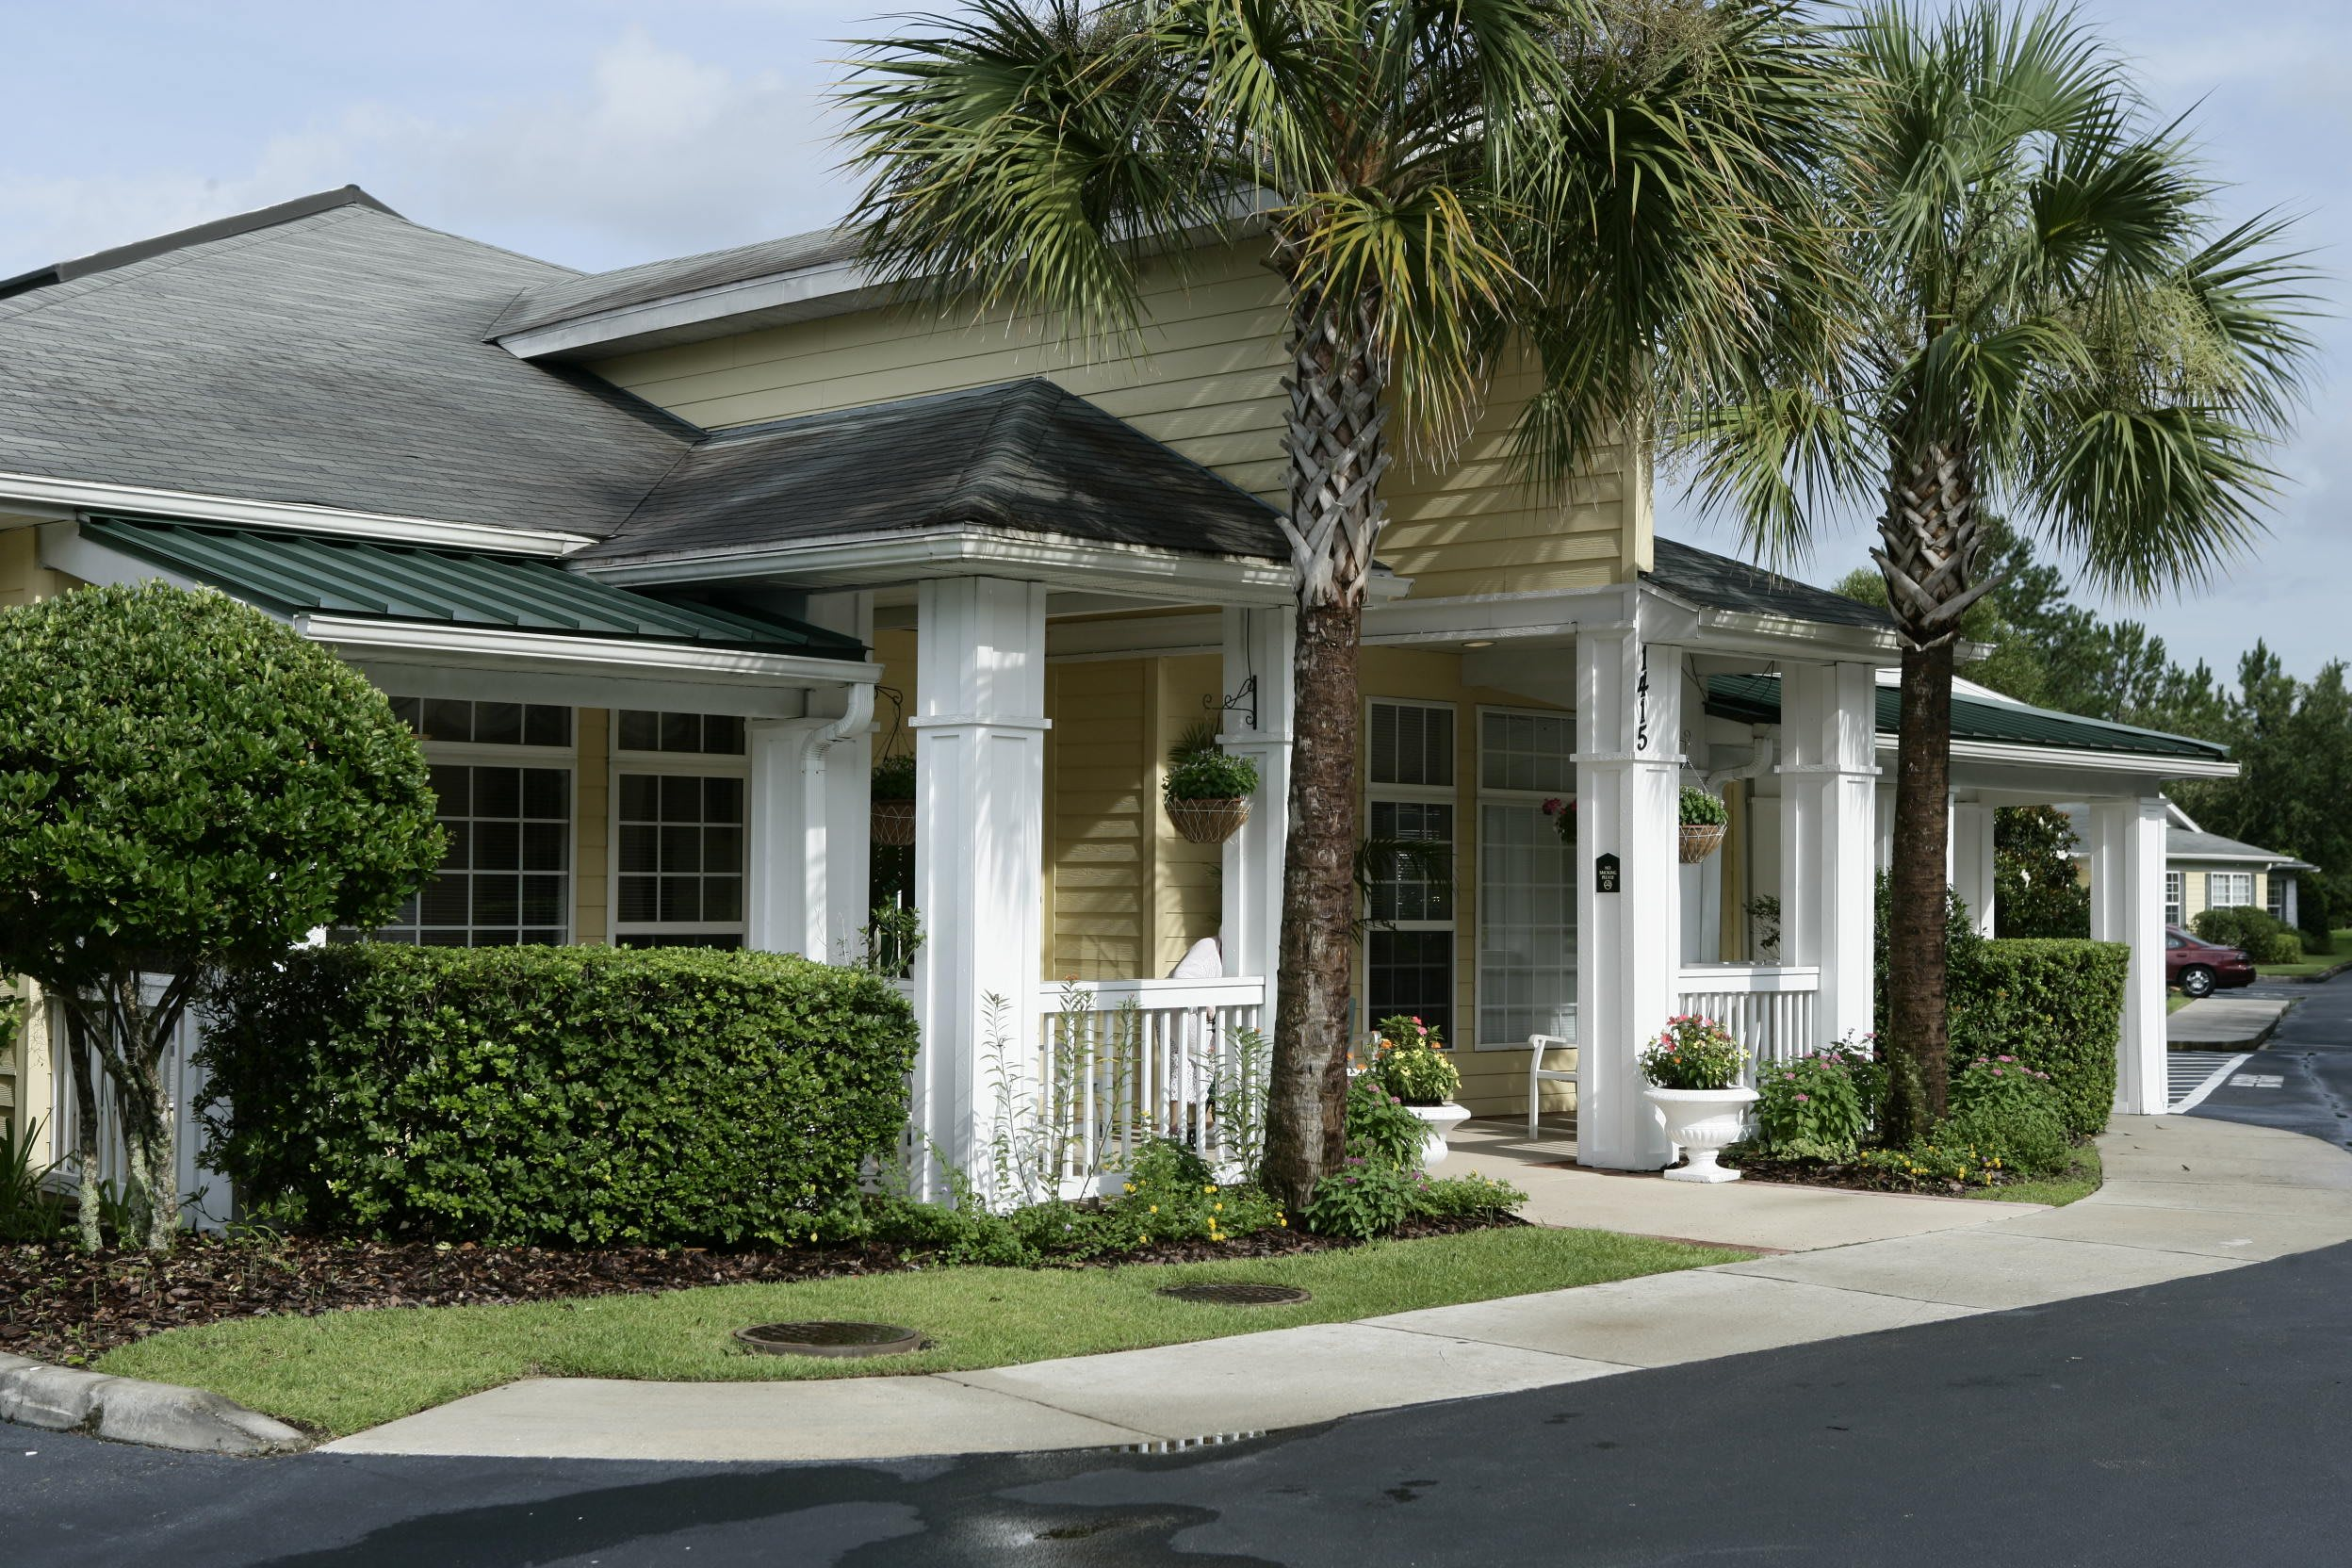 Photo 1 of HarborChase of Gainesville, an ECC licensed Community